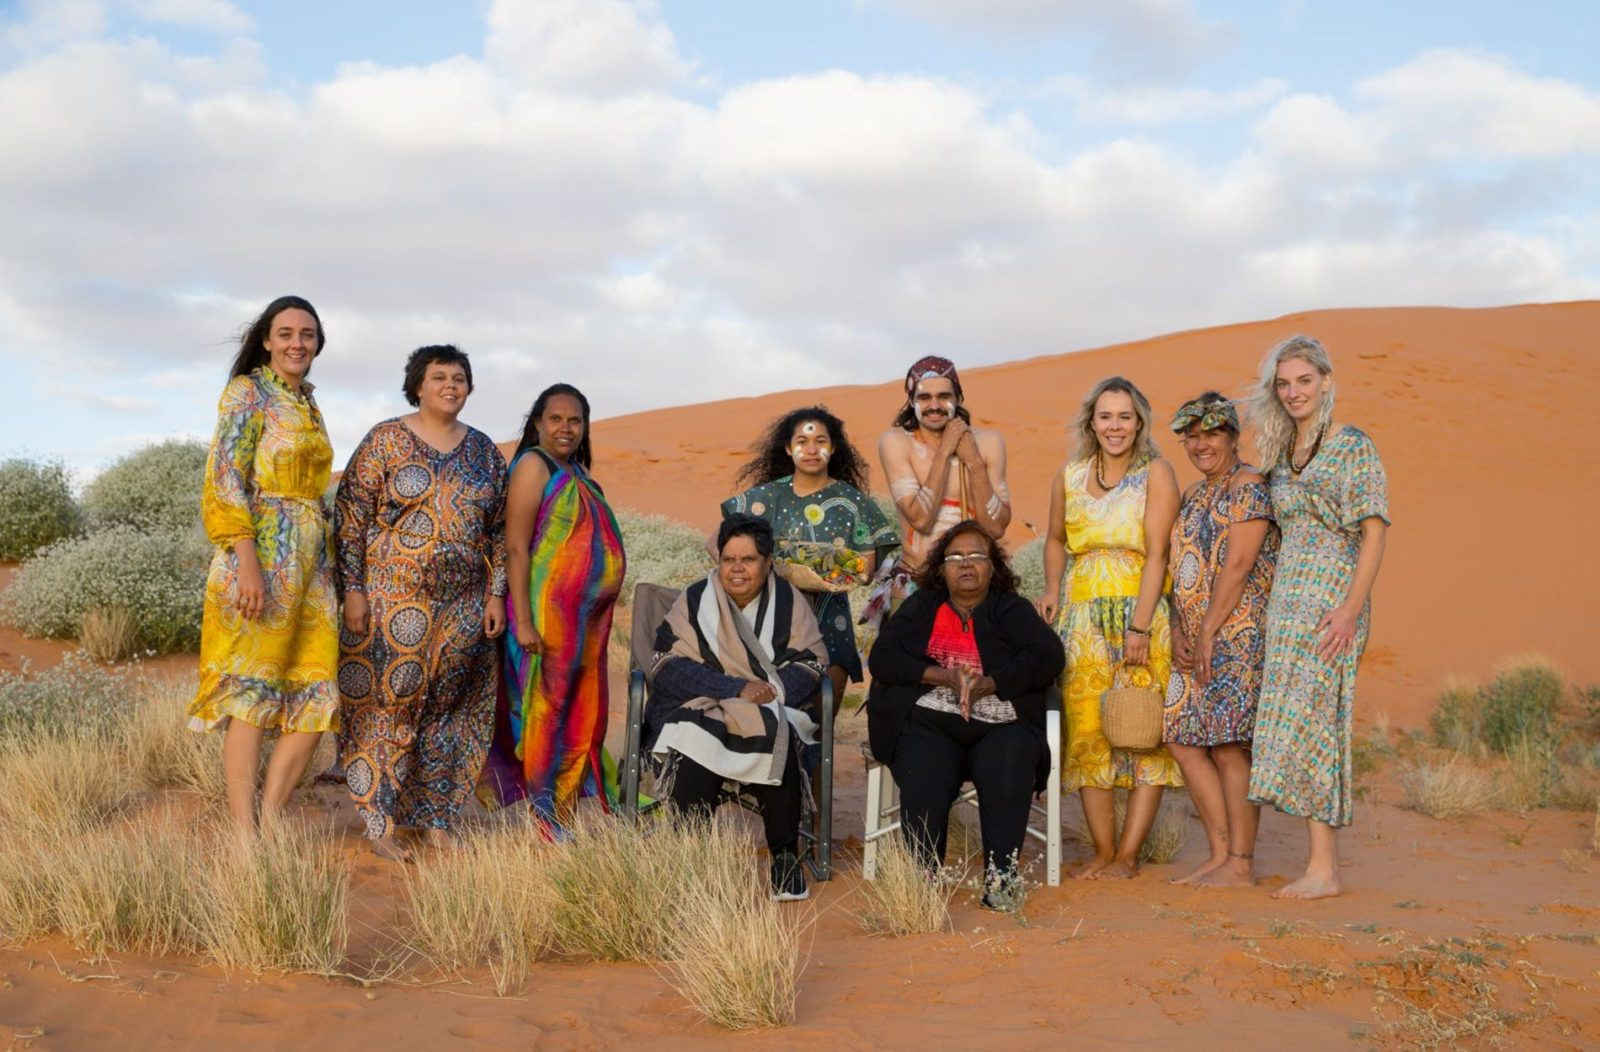 A group of First Nations people are gathered in a desert setting, wearing beautiful bright clothes